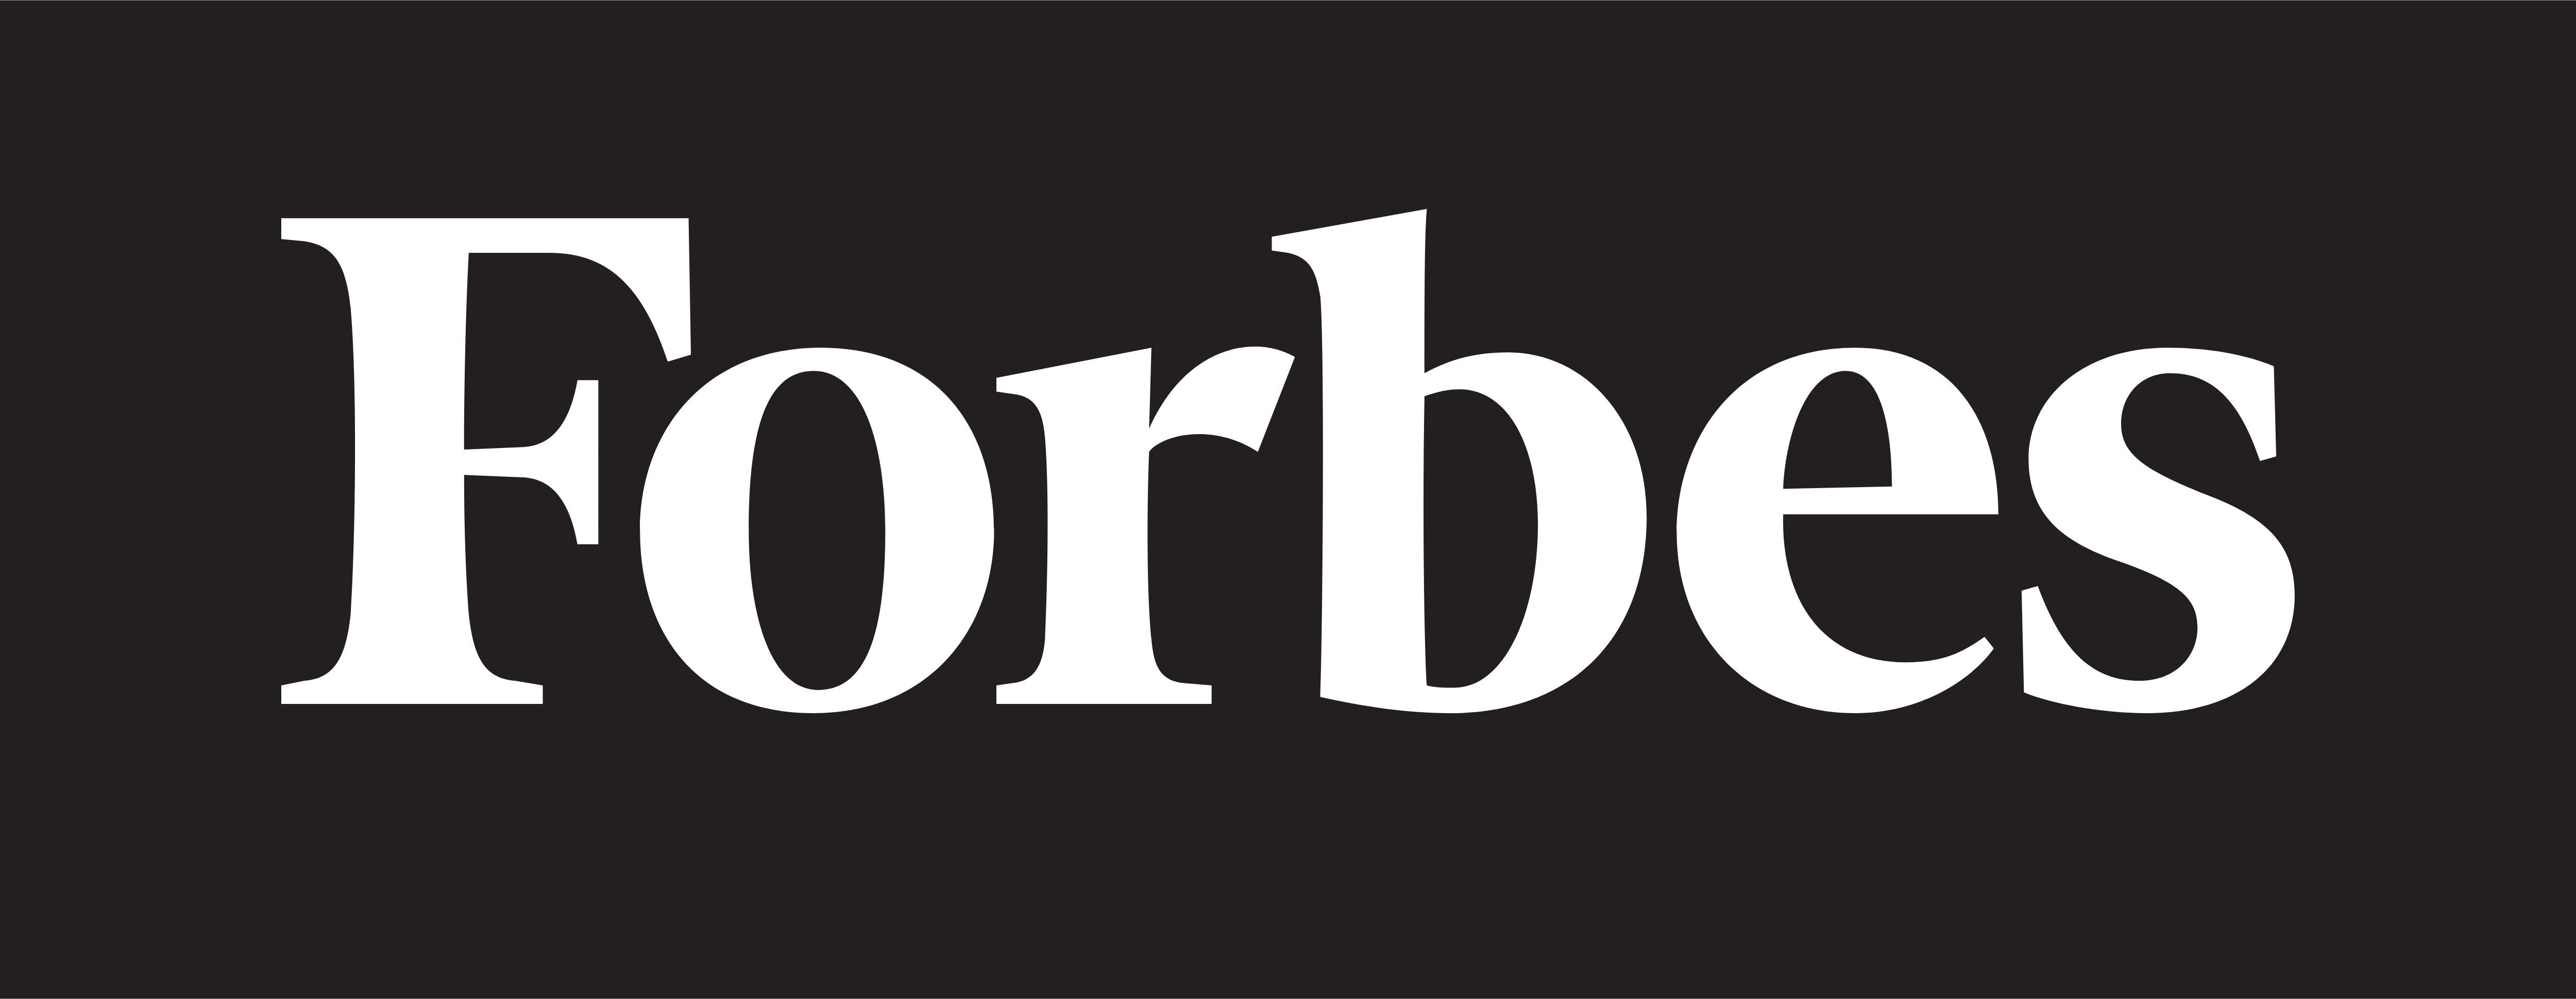 Forbes_Interview_Mounia-Aram-Company